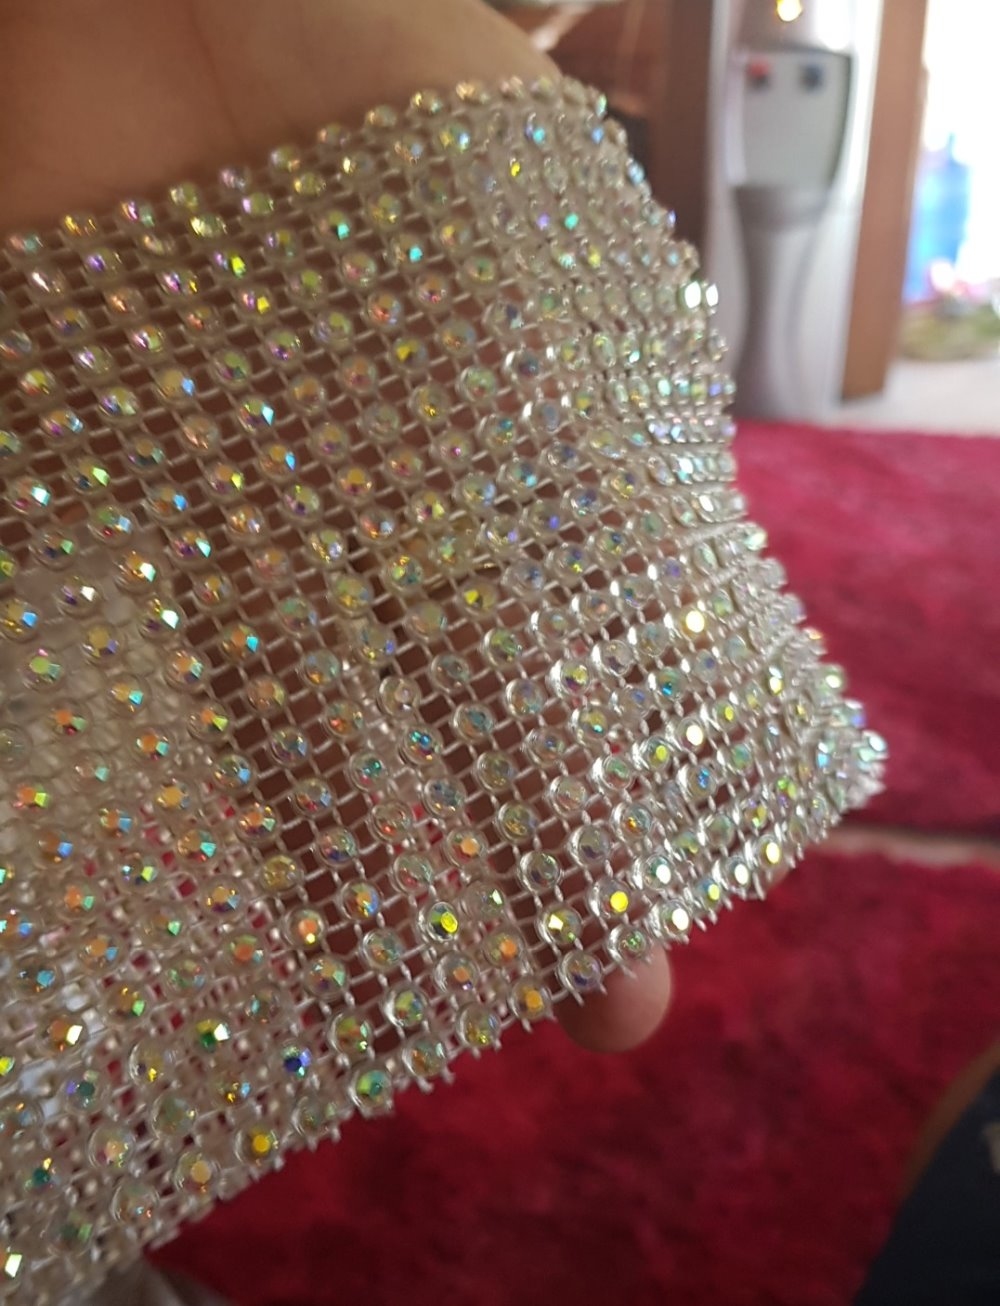 10yards 18 rows Elastic Plastic rhinestone mesh trim in Transparent SS16 4mm crystal AB stone banding DIY Costume accessories